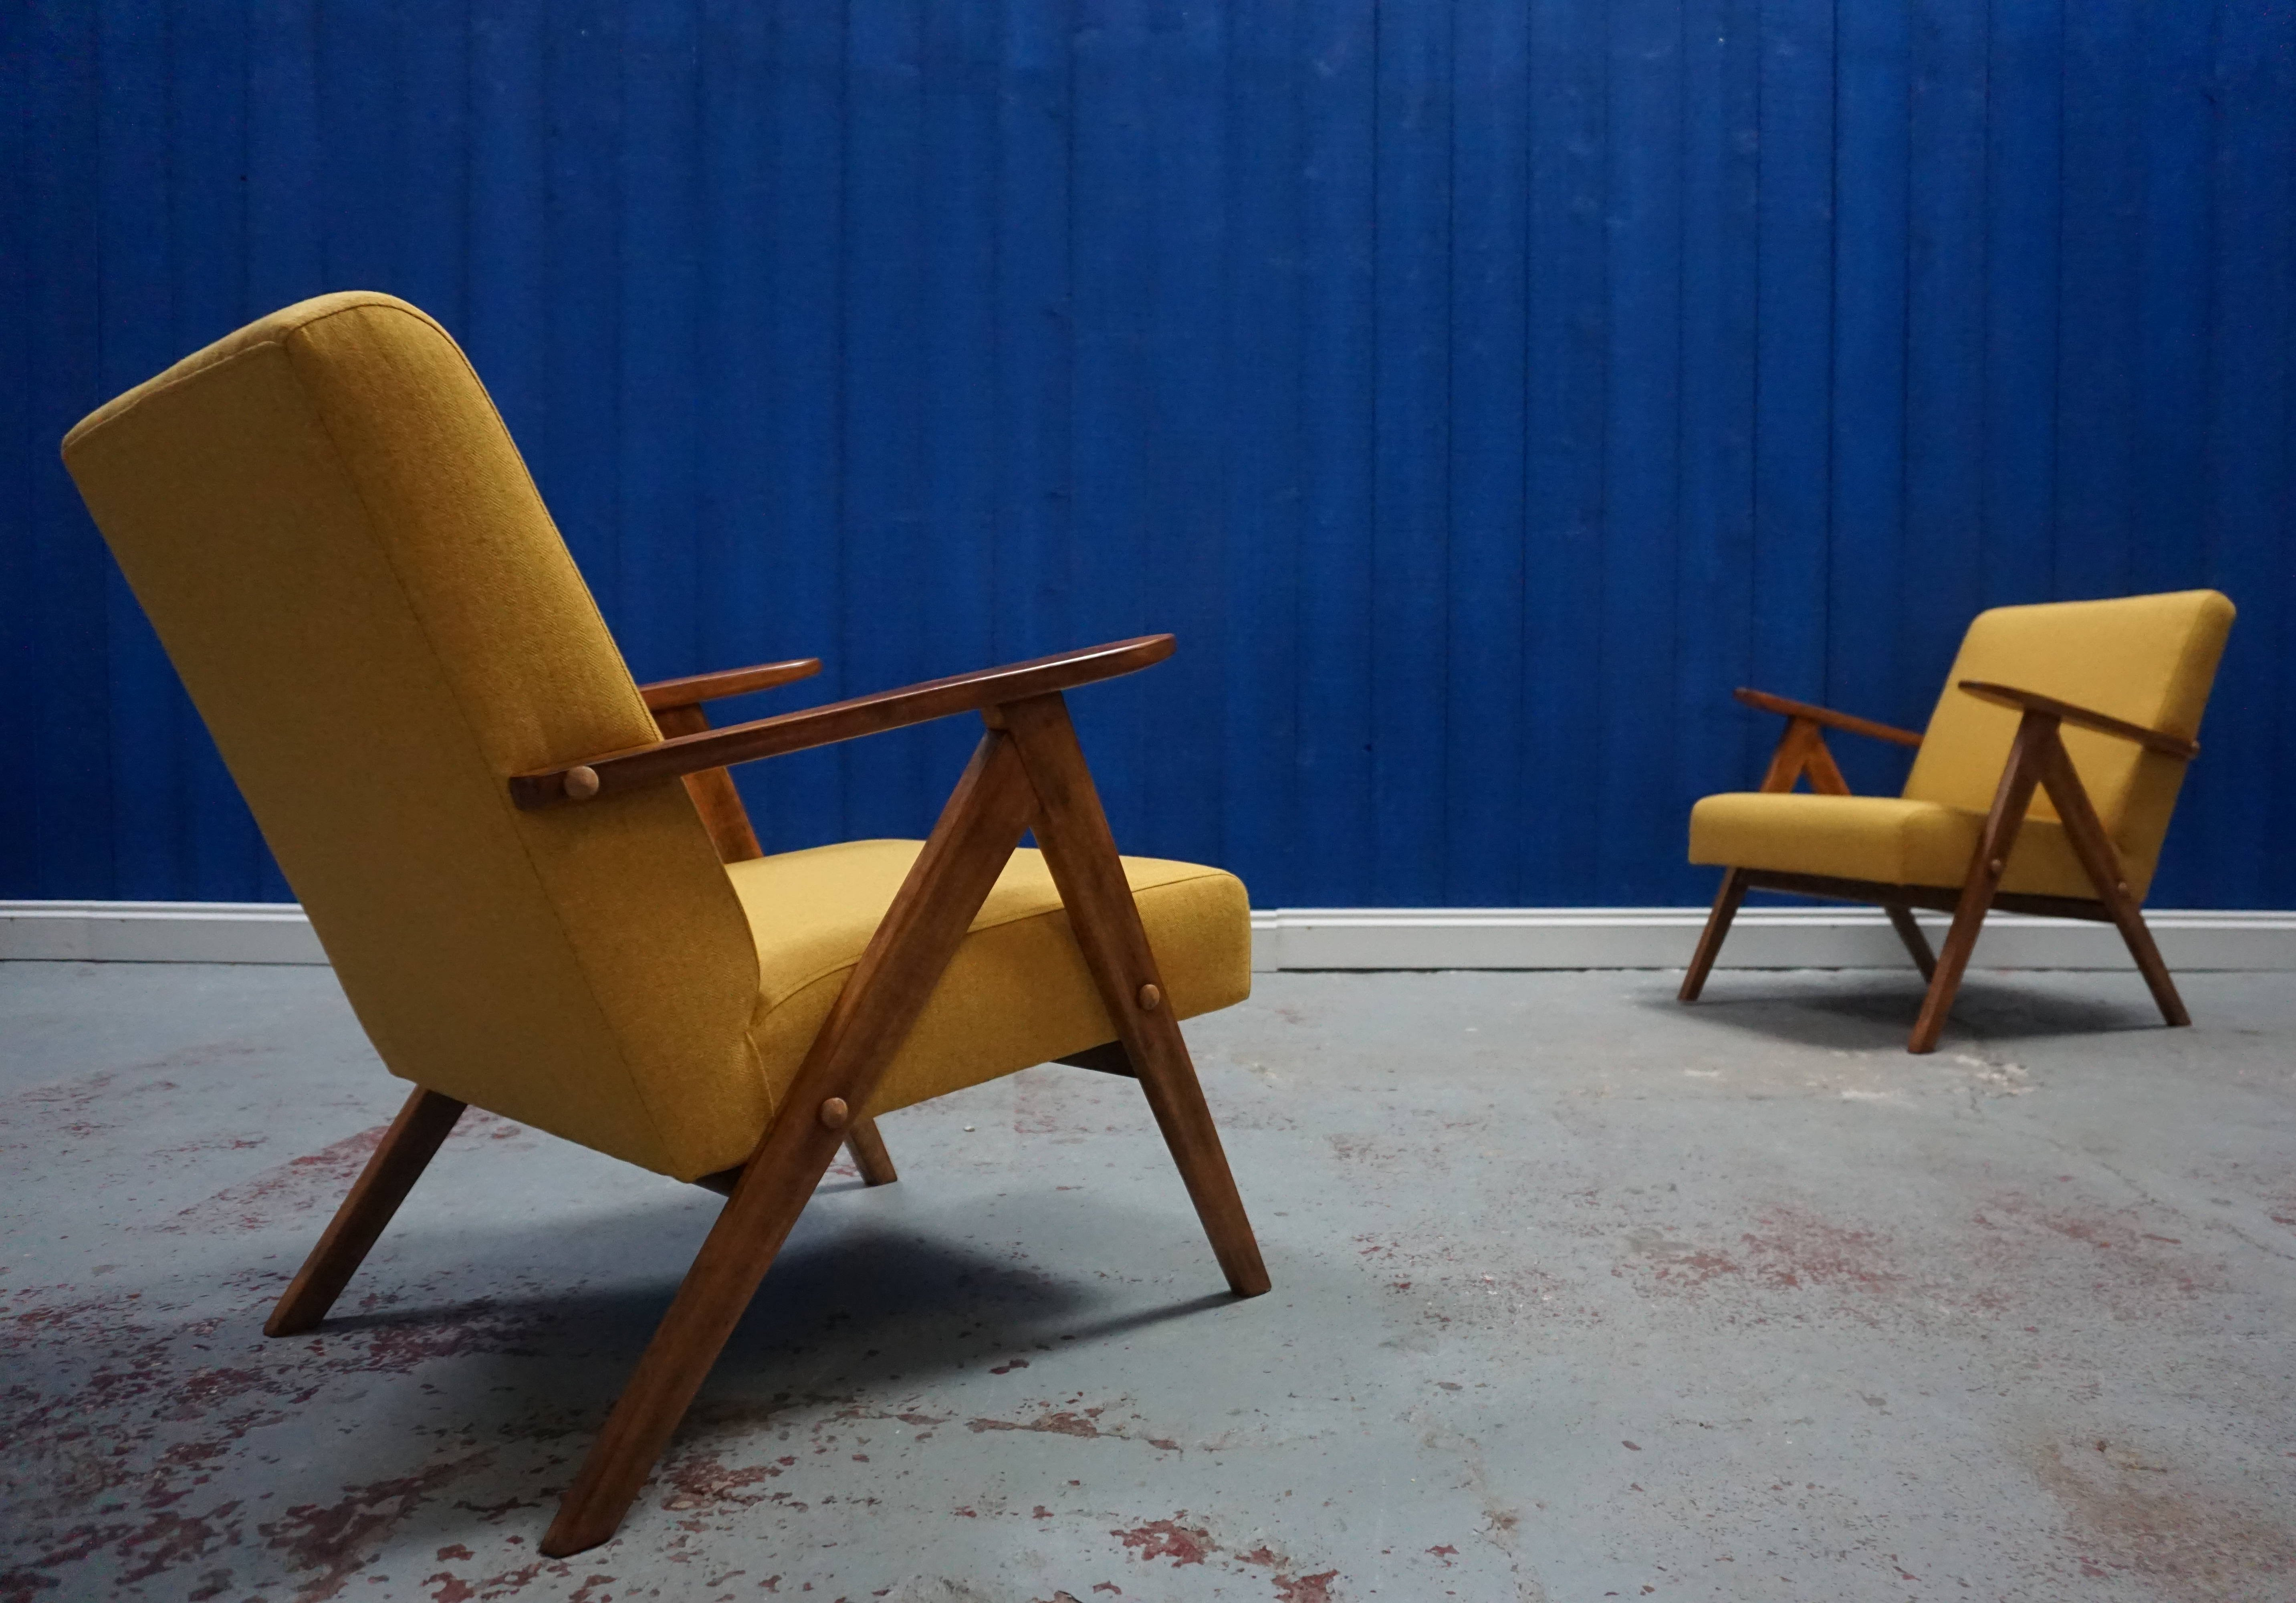 Enjoyable Pair Of Mid Century Modern Easy Chairs In Yellow Tweed 1960S Beatyapartments Chair Design Images Beatyapartmentscom